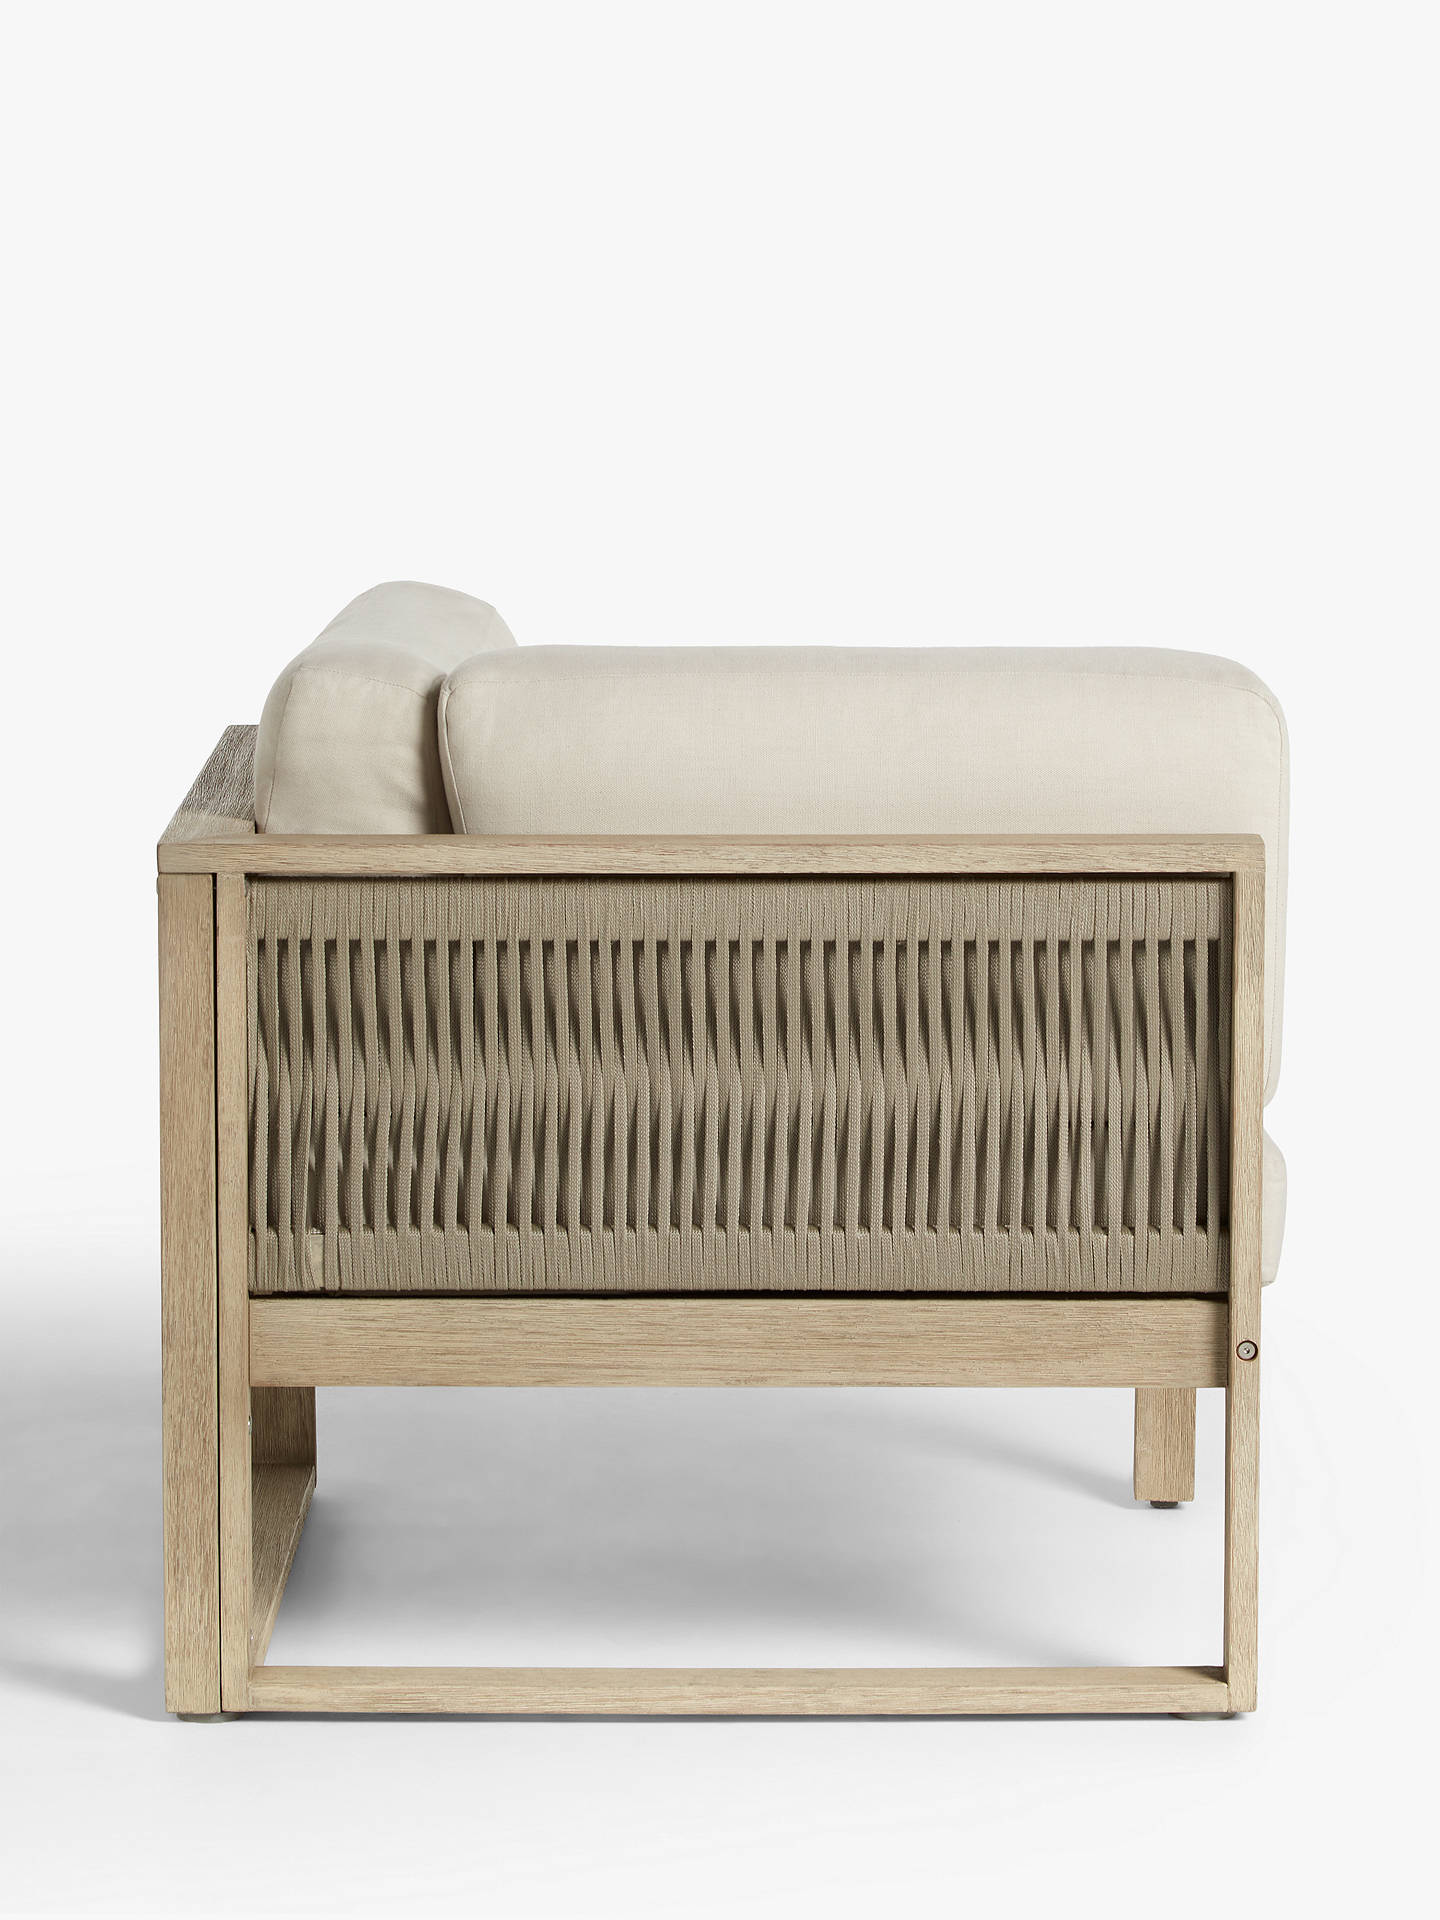 Surprising John Lewis Partners St Ives Rope Garden Corner Chair With Cushions Fsc Certified Eucalyptus Wood Natural Download Free Architecture Designs Osuribritishbridgeorg